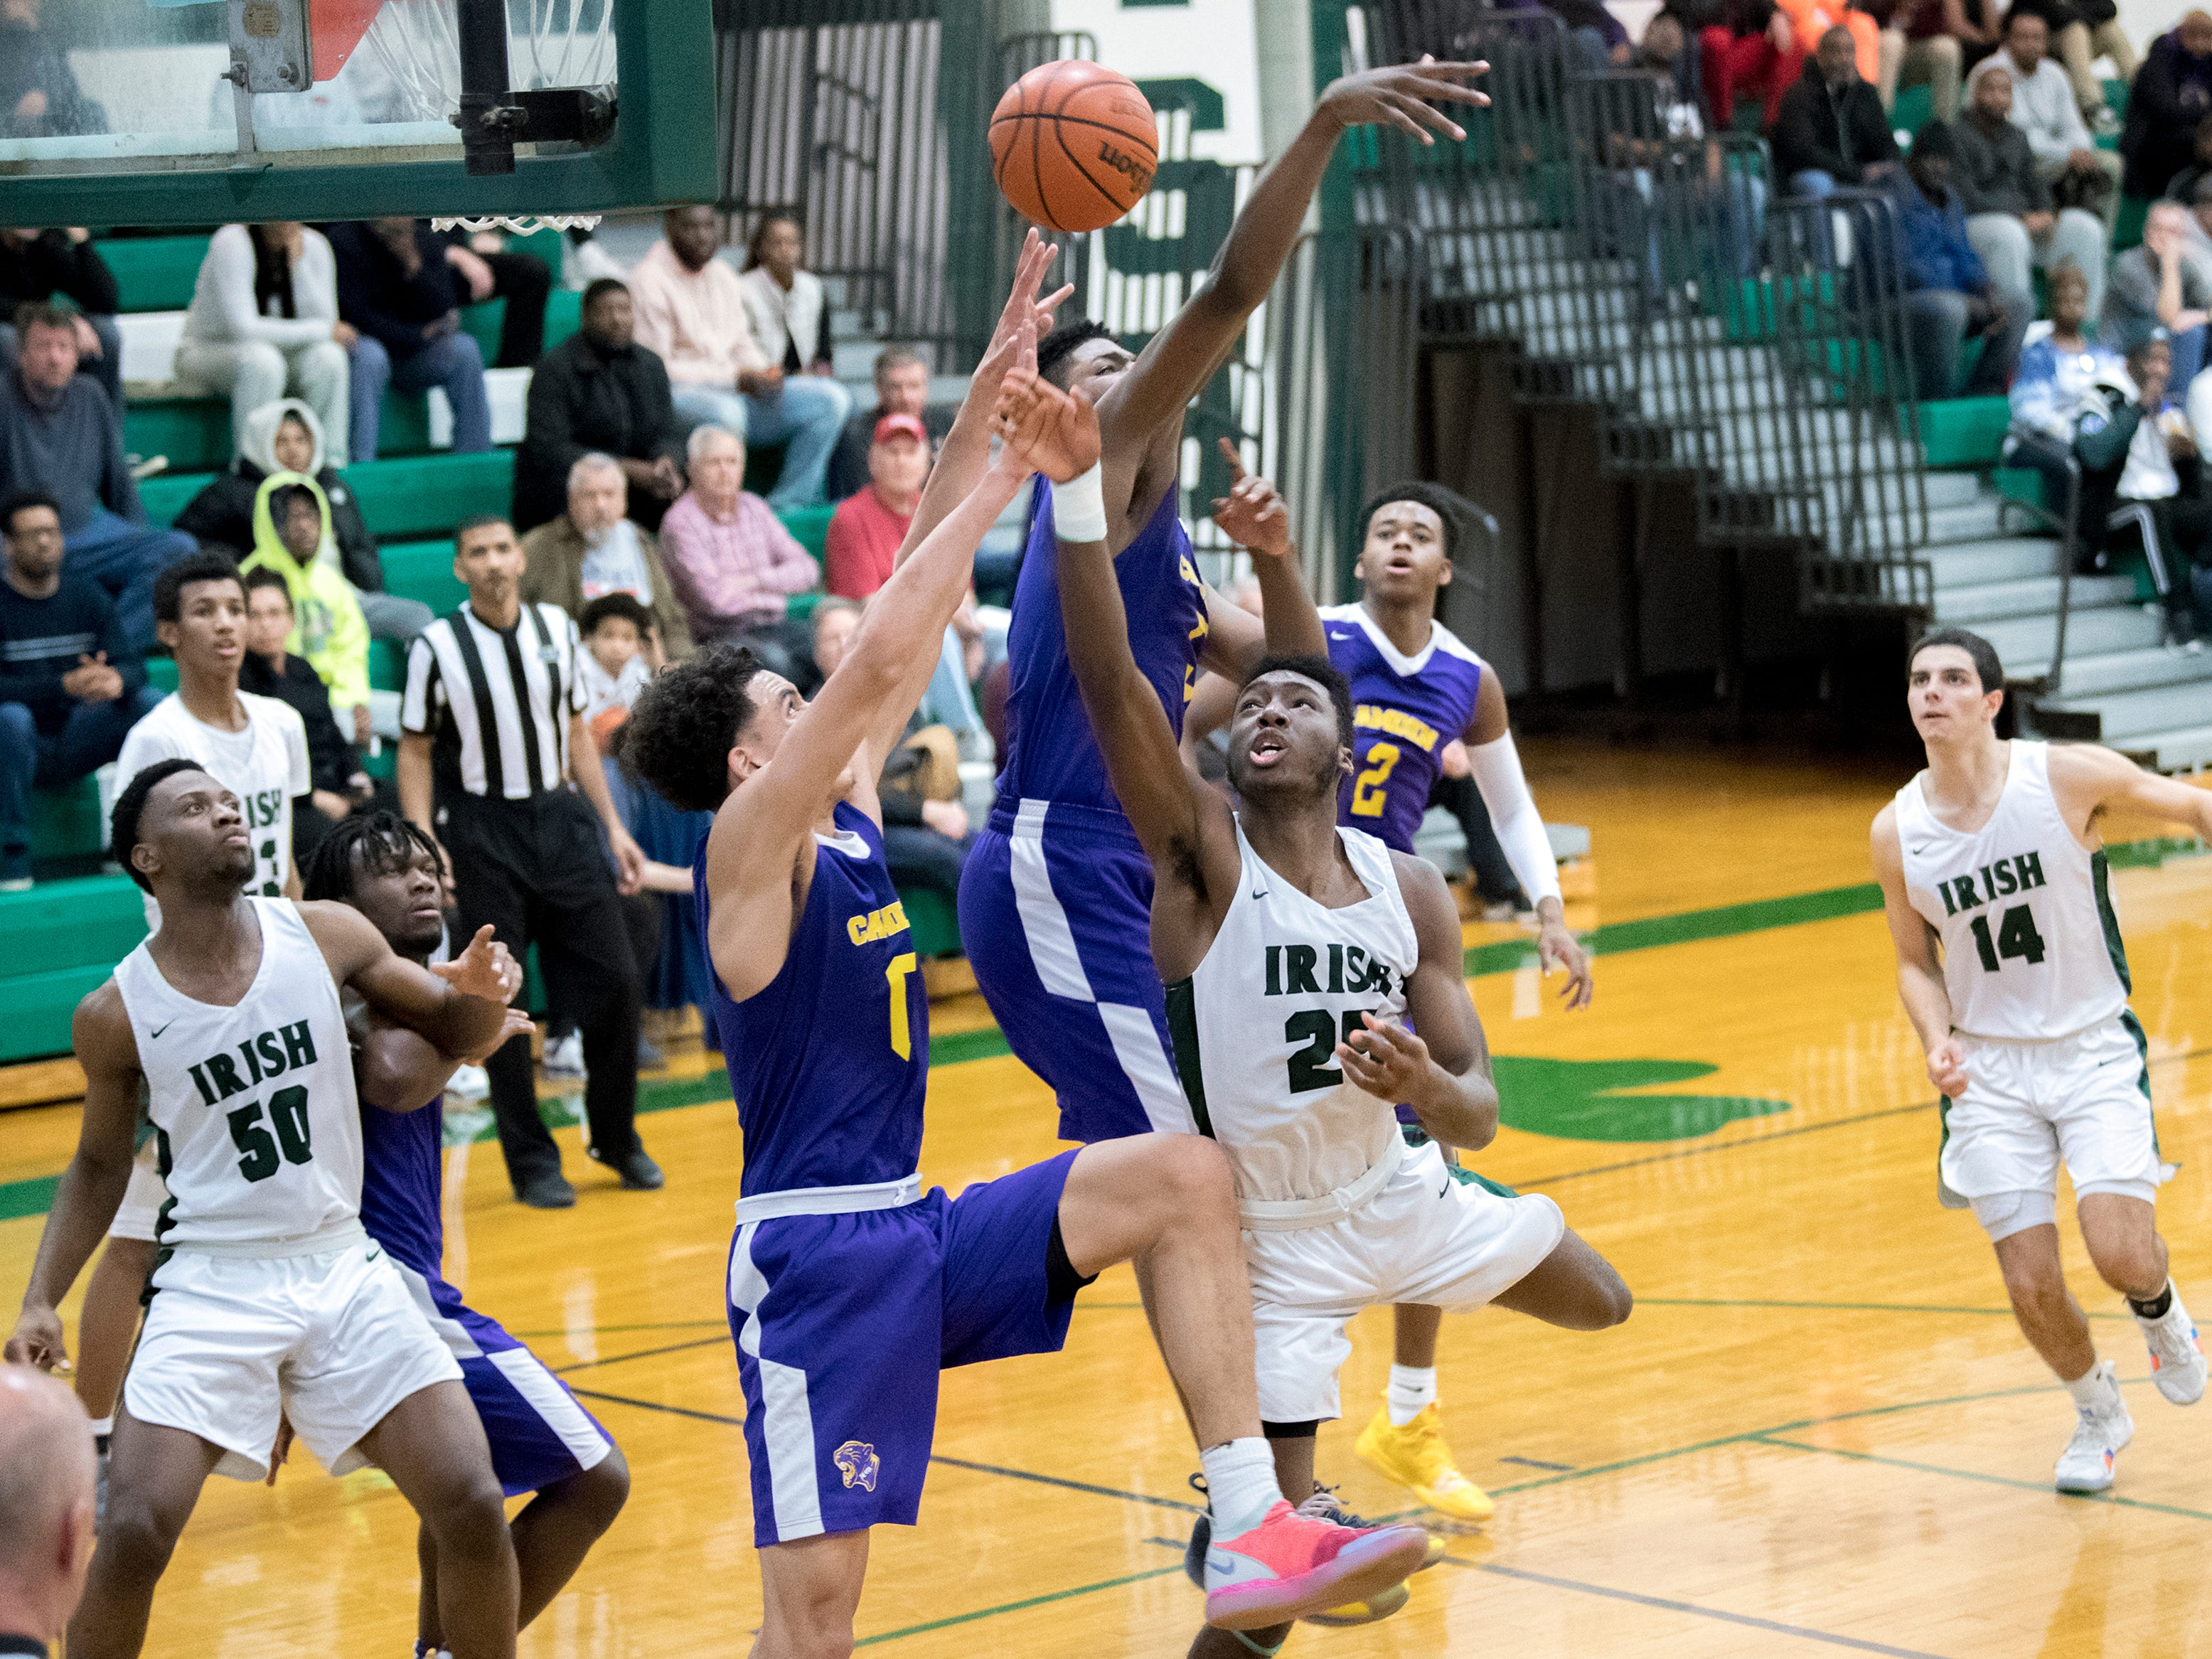 Camden's Lance Ware (0) and Camden Catholic's Babatunde Ajike (25) battle for possession Thursday, Feb. 21, 2019 at Camden Catholic High School in Cherry Hill, N.J. Camden Catholic won 57-54.